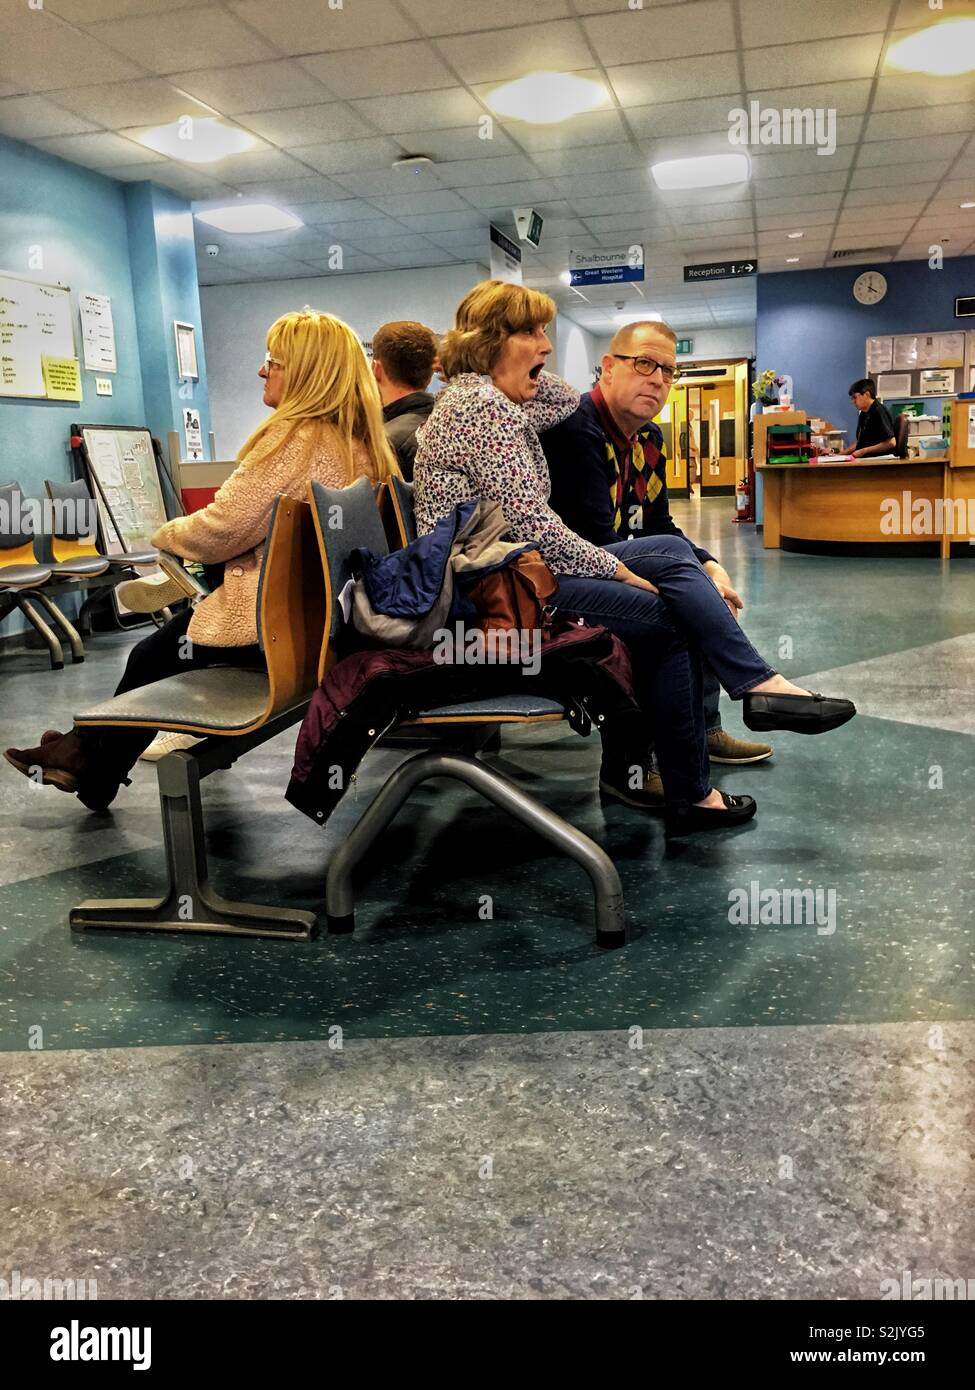 The boredom of people in a hospital waiting area. Woman yawning. - Stock Image